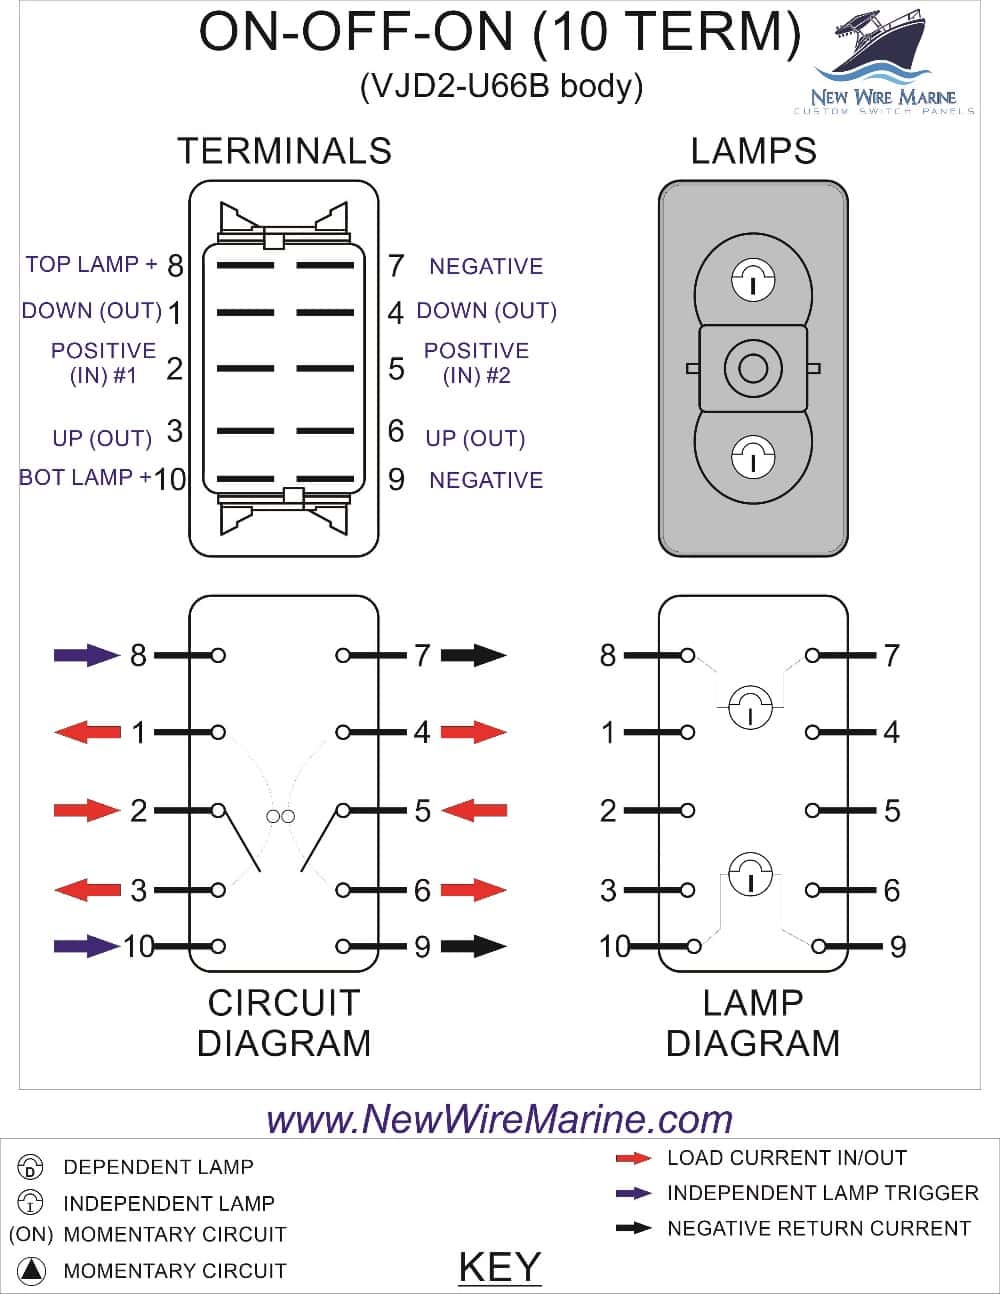 carling toggle switch wiring diagram collection wiring diagram sample carling toggle switch wiring diagram collection on off backlit rocker switch blue led new wire